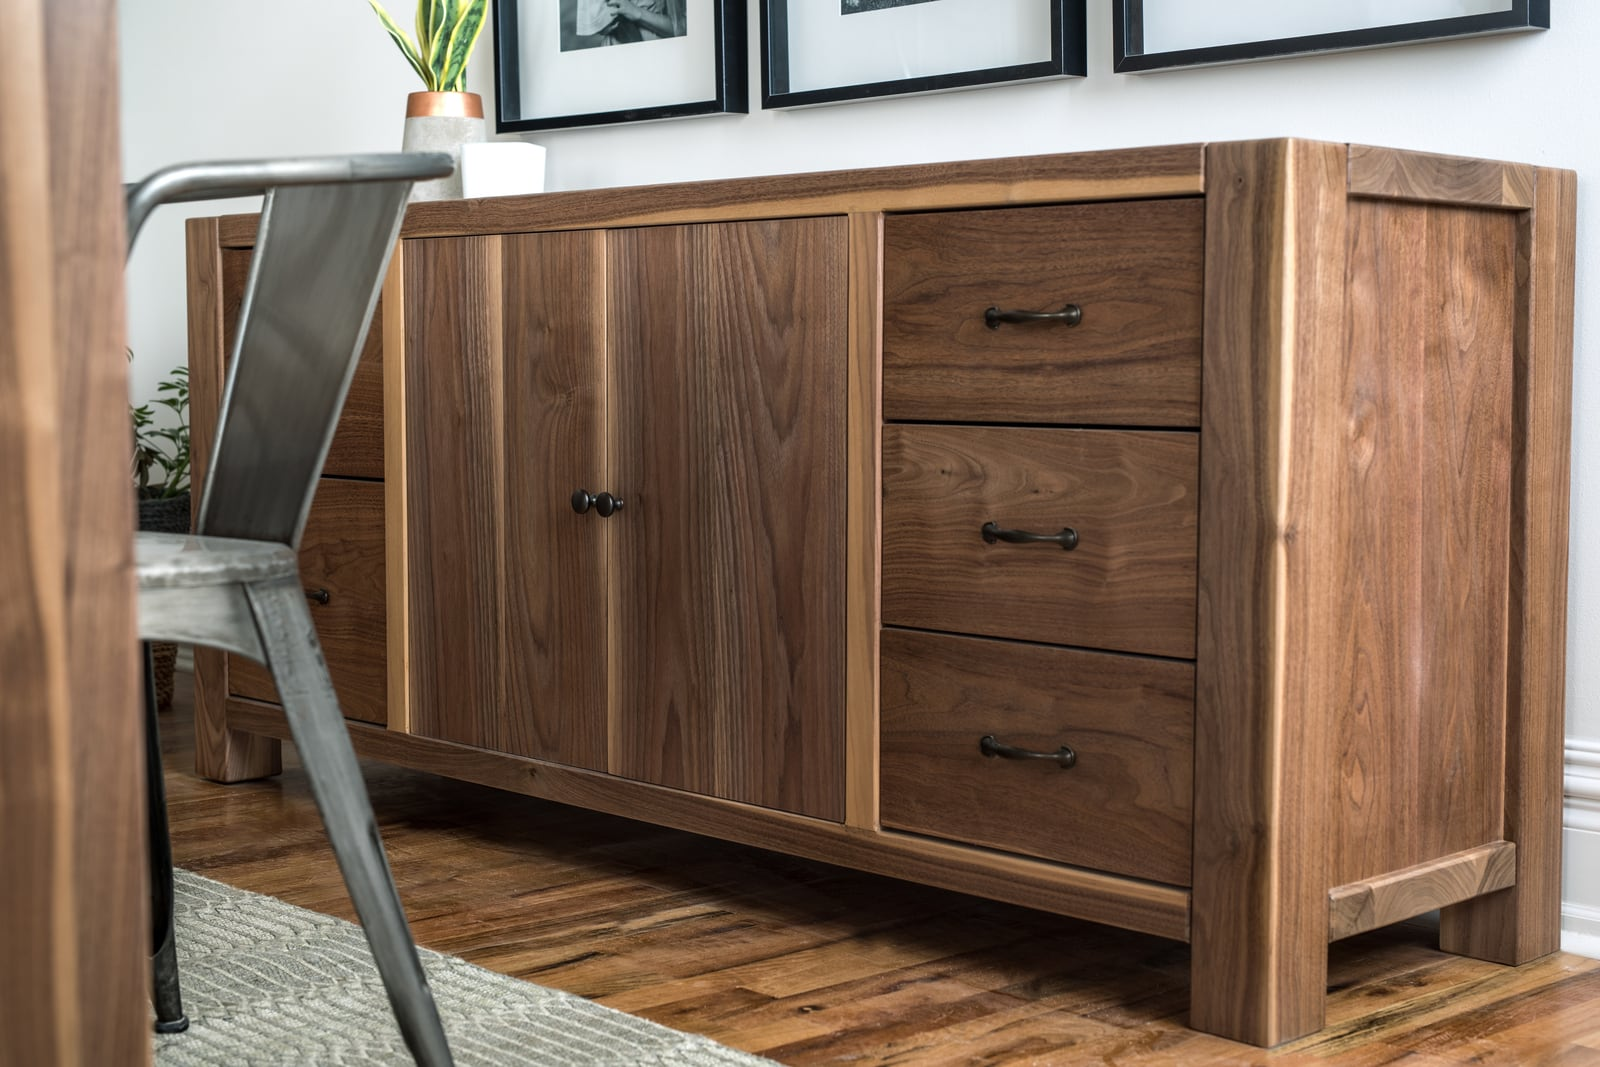 Unruh's Manchester Sideboard for a dining room